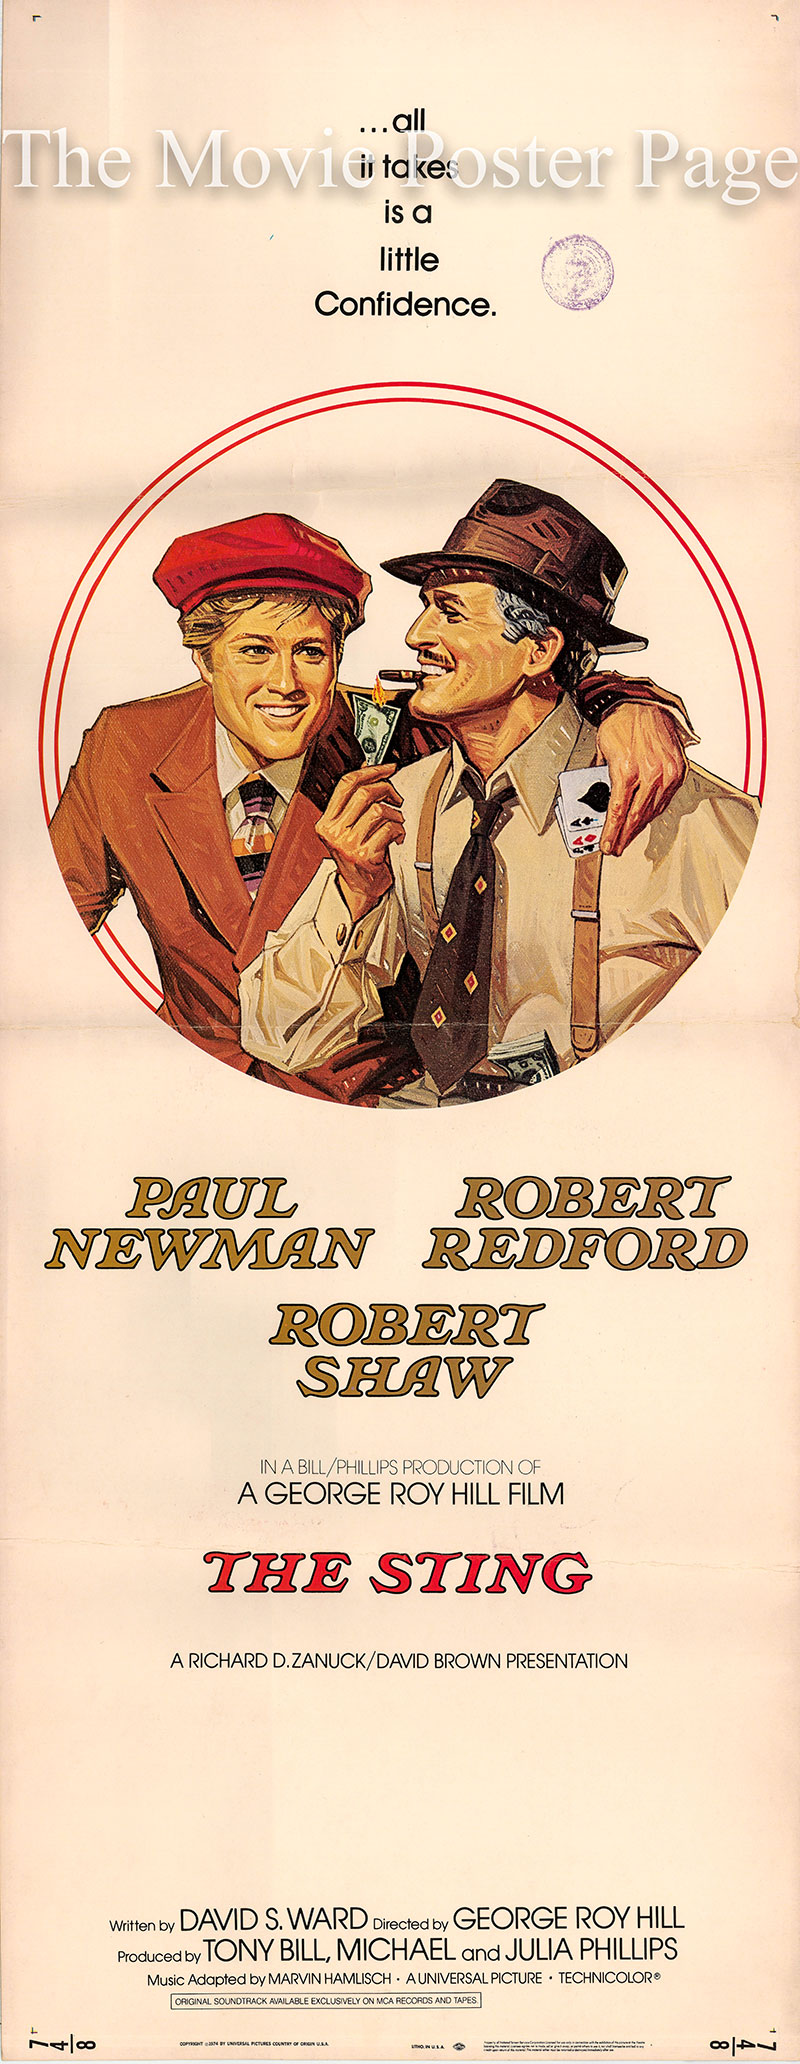 Pictured is a US insert promotional poster for the 1974 George Roy Hill film The Sting starring Paul Newman as Henry Gondorff.